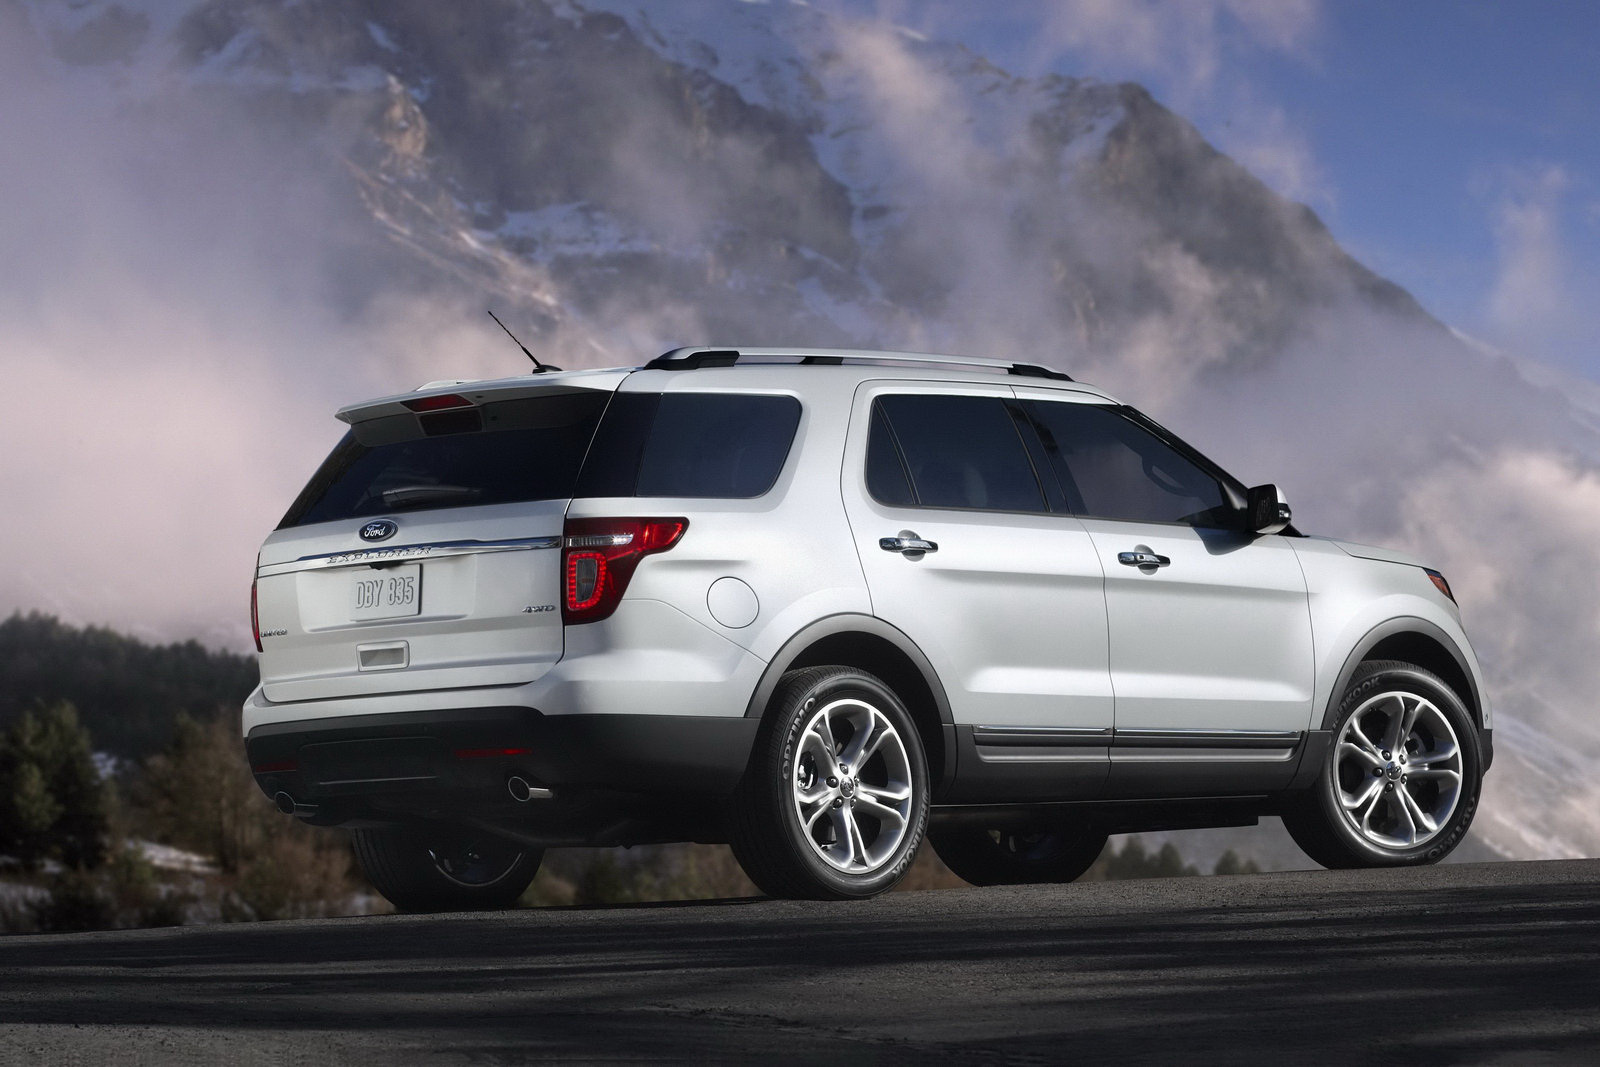 Ford explorer 2011 photo - 4